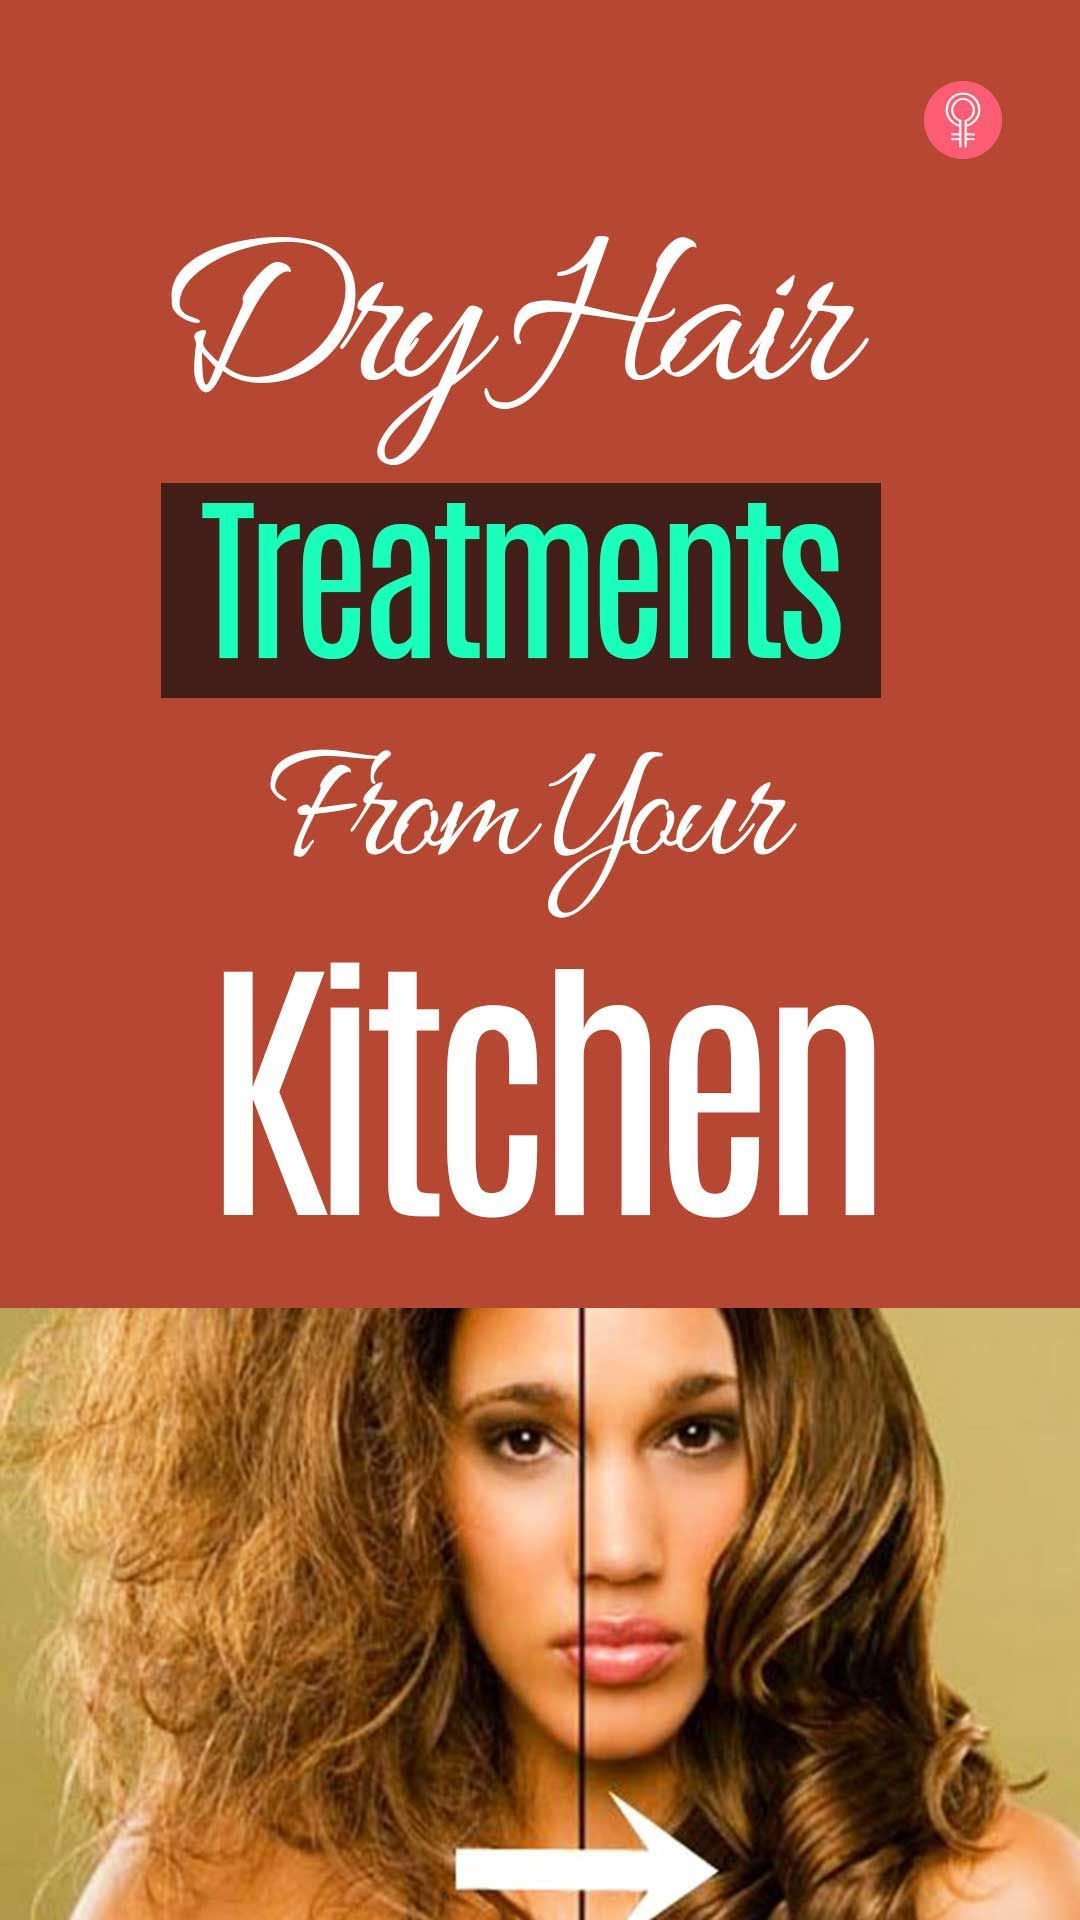 24 Dry Hair Treatments From Your Kitchen 24 Dry Hair Treatments From Your Kitchen new pictures